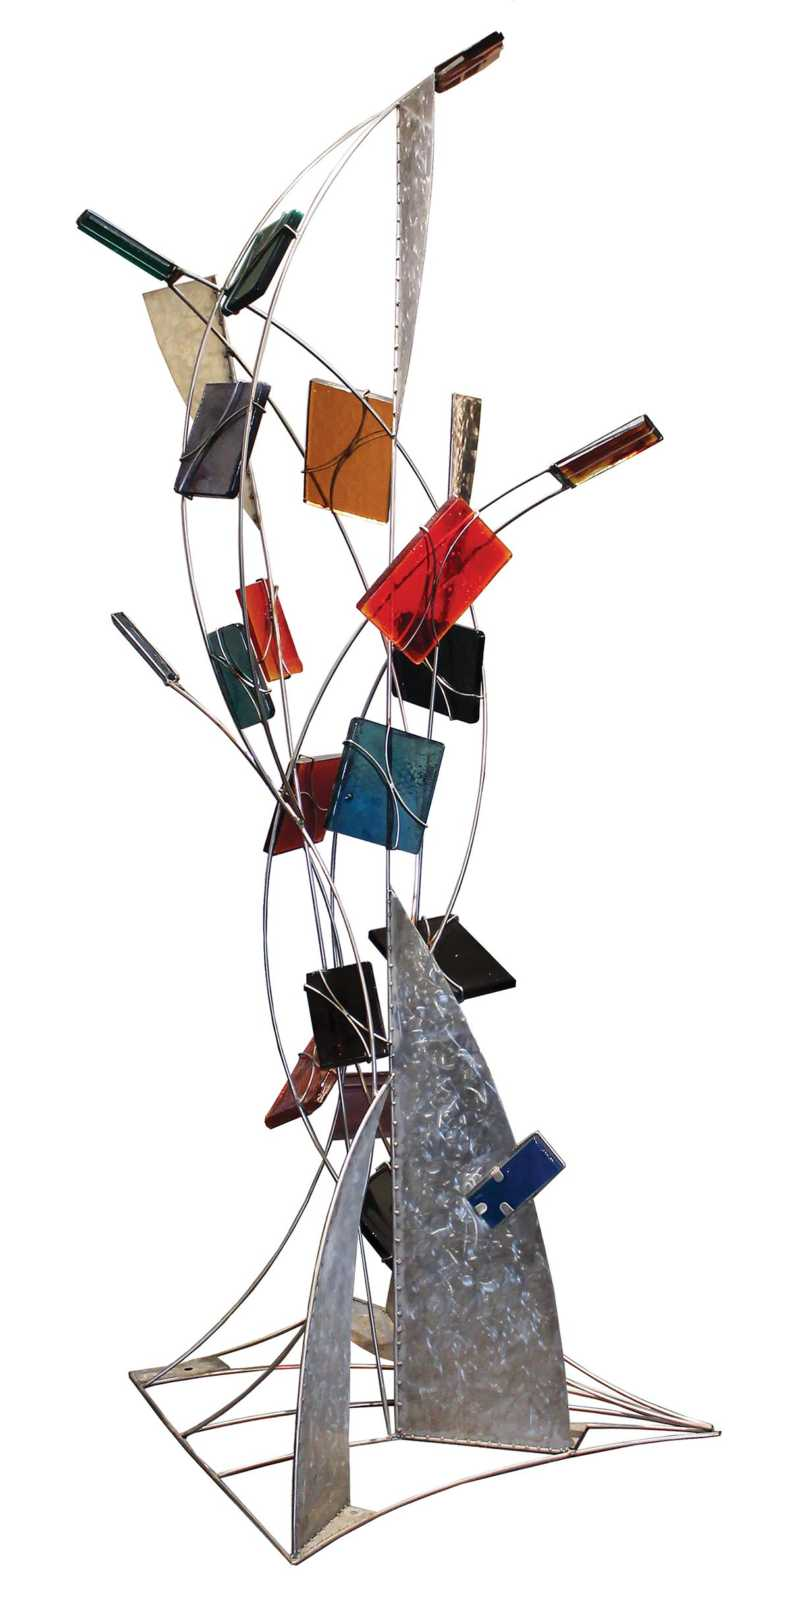 brother-mel-dalle-de-verre-metal-and-glass-sculpture-high-res